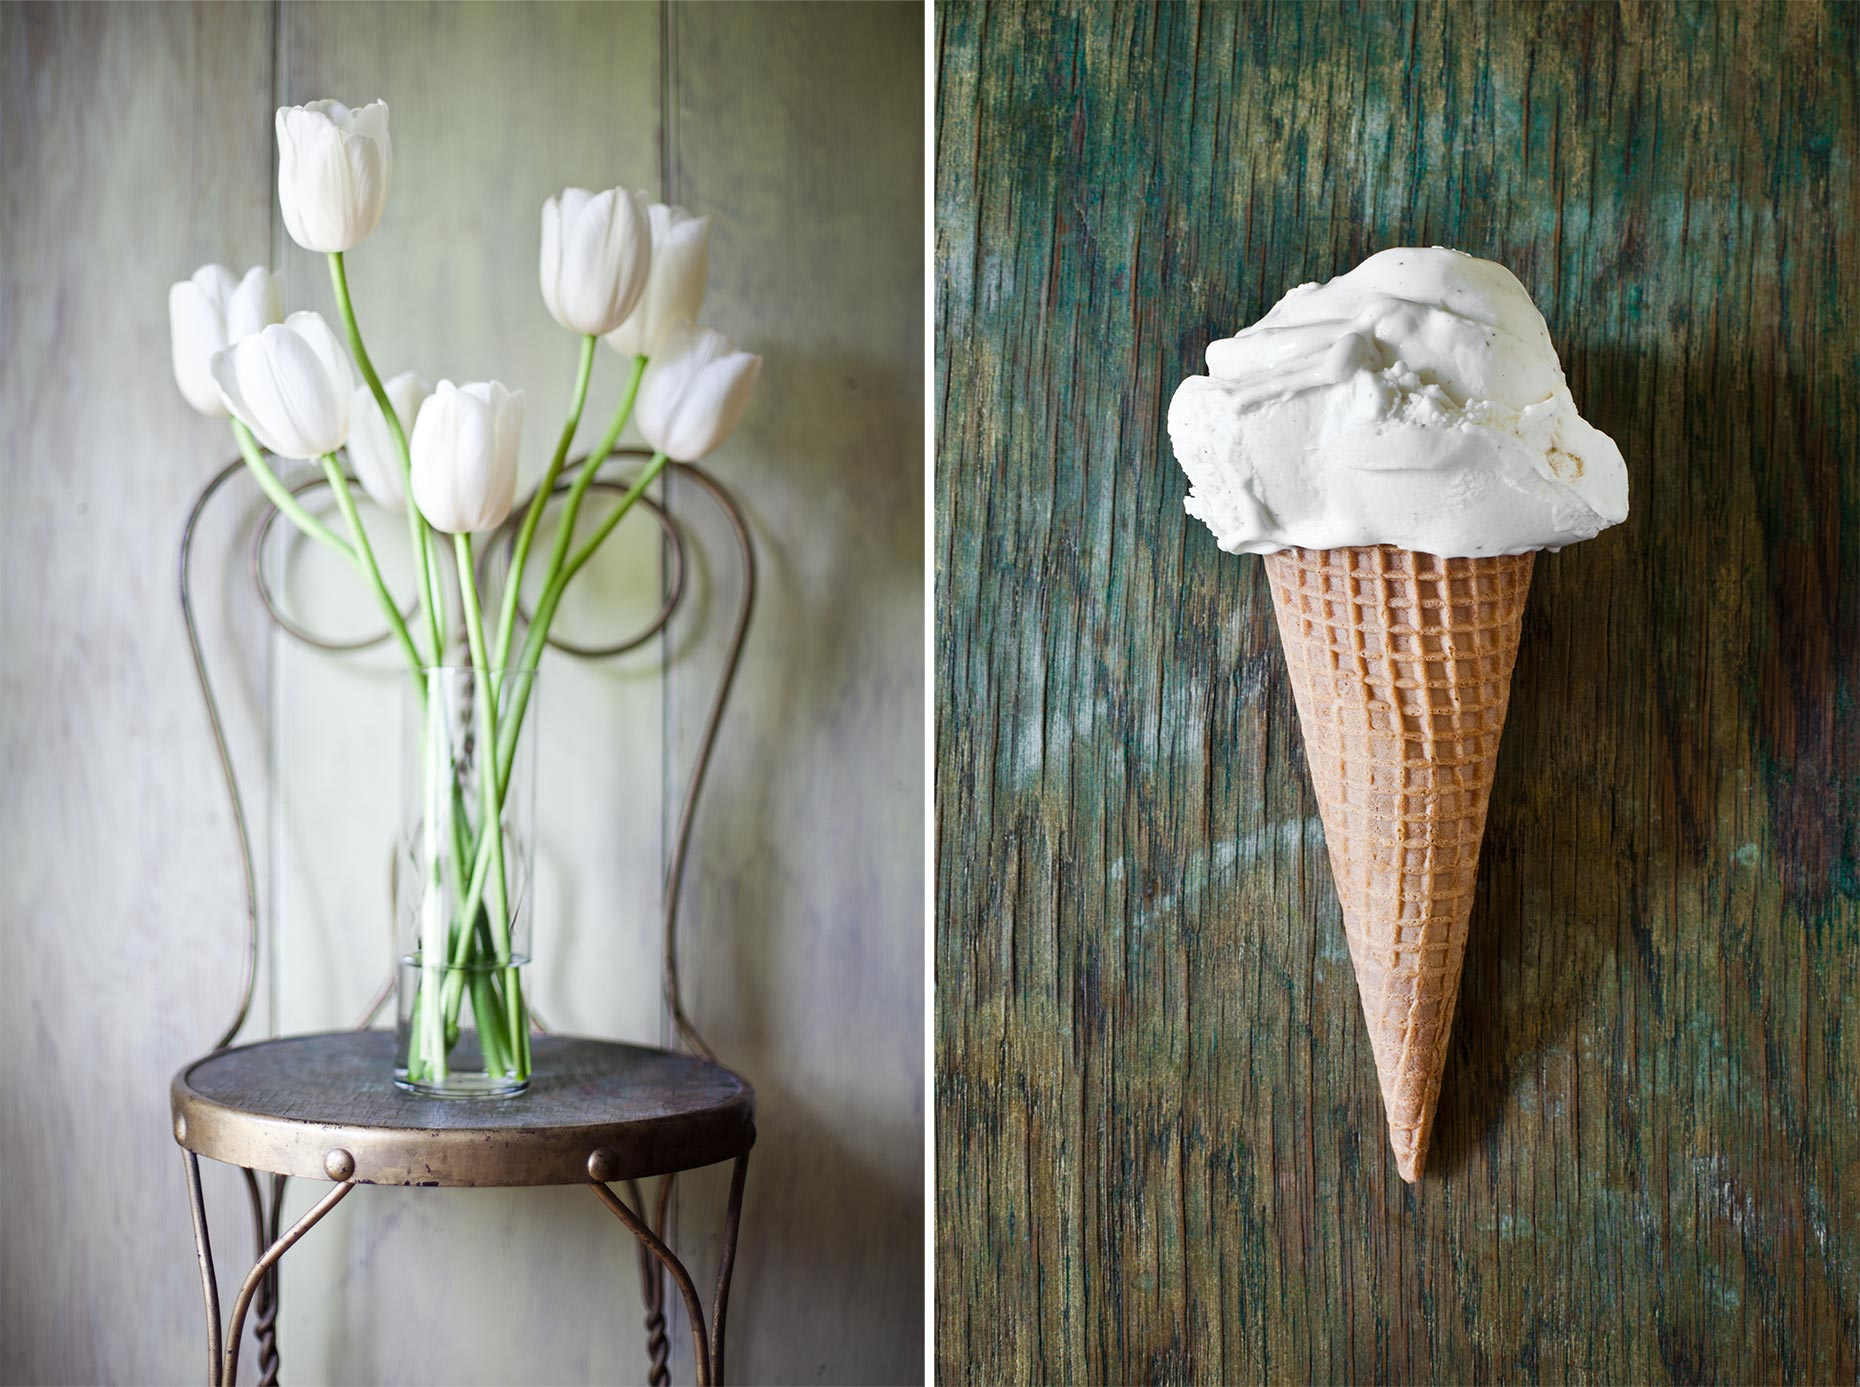 hbrownsphotography-icecreamcollage-web